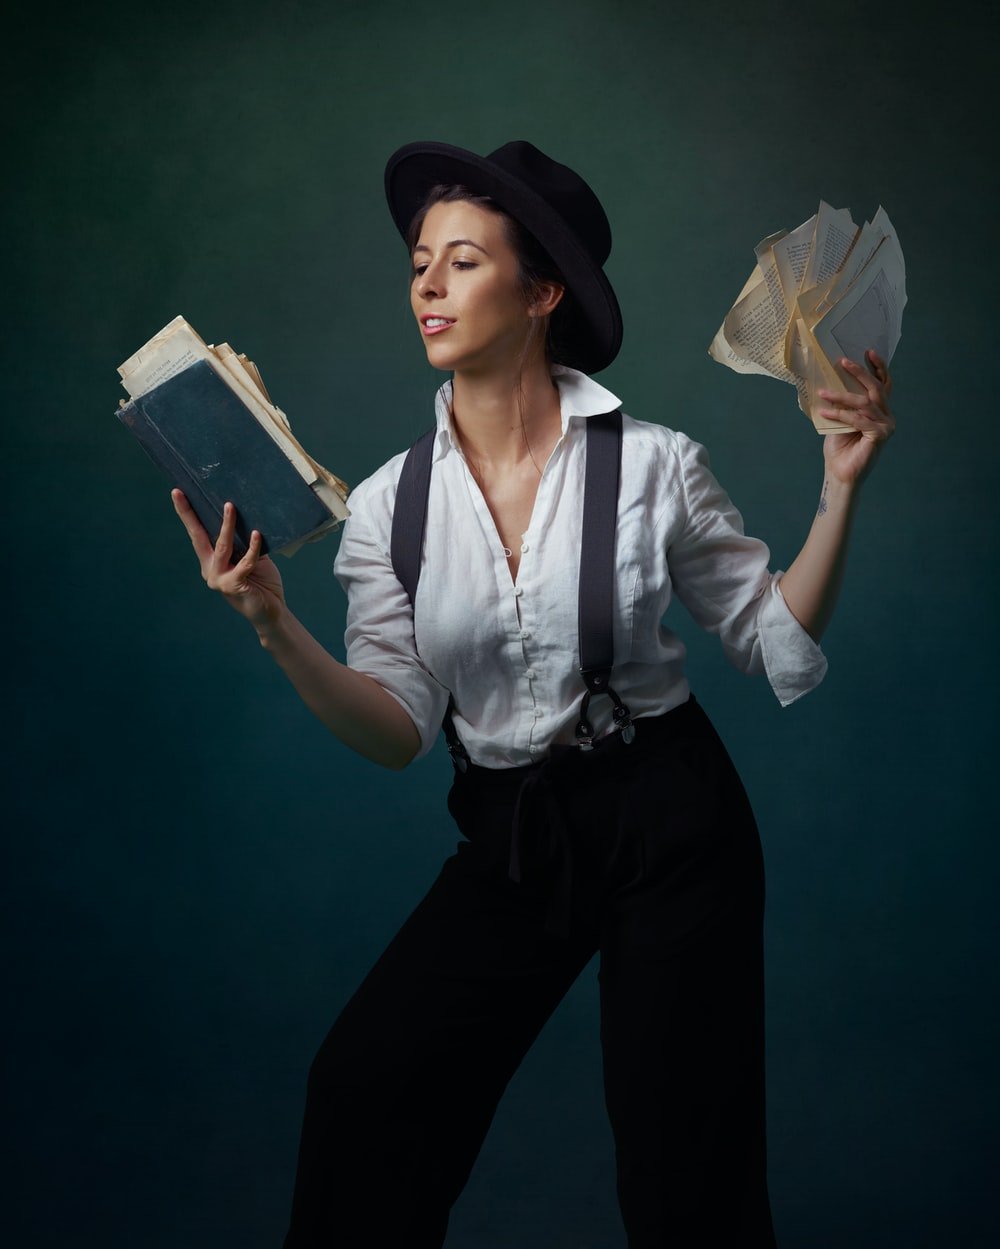 woman in white dress shirt and black pants holding white paper